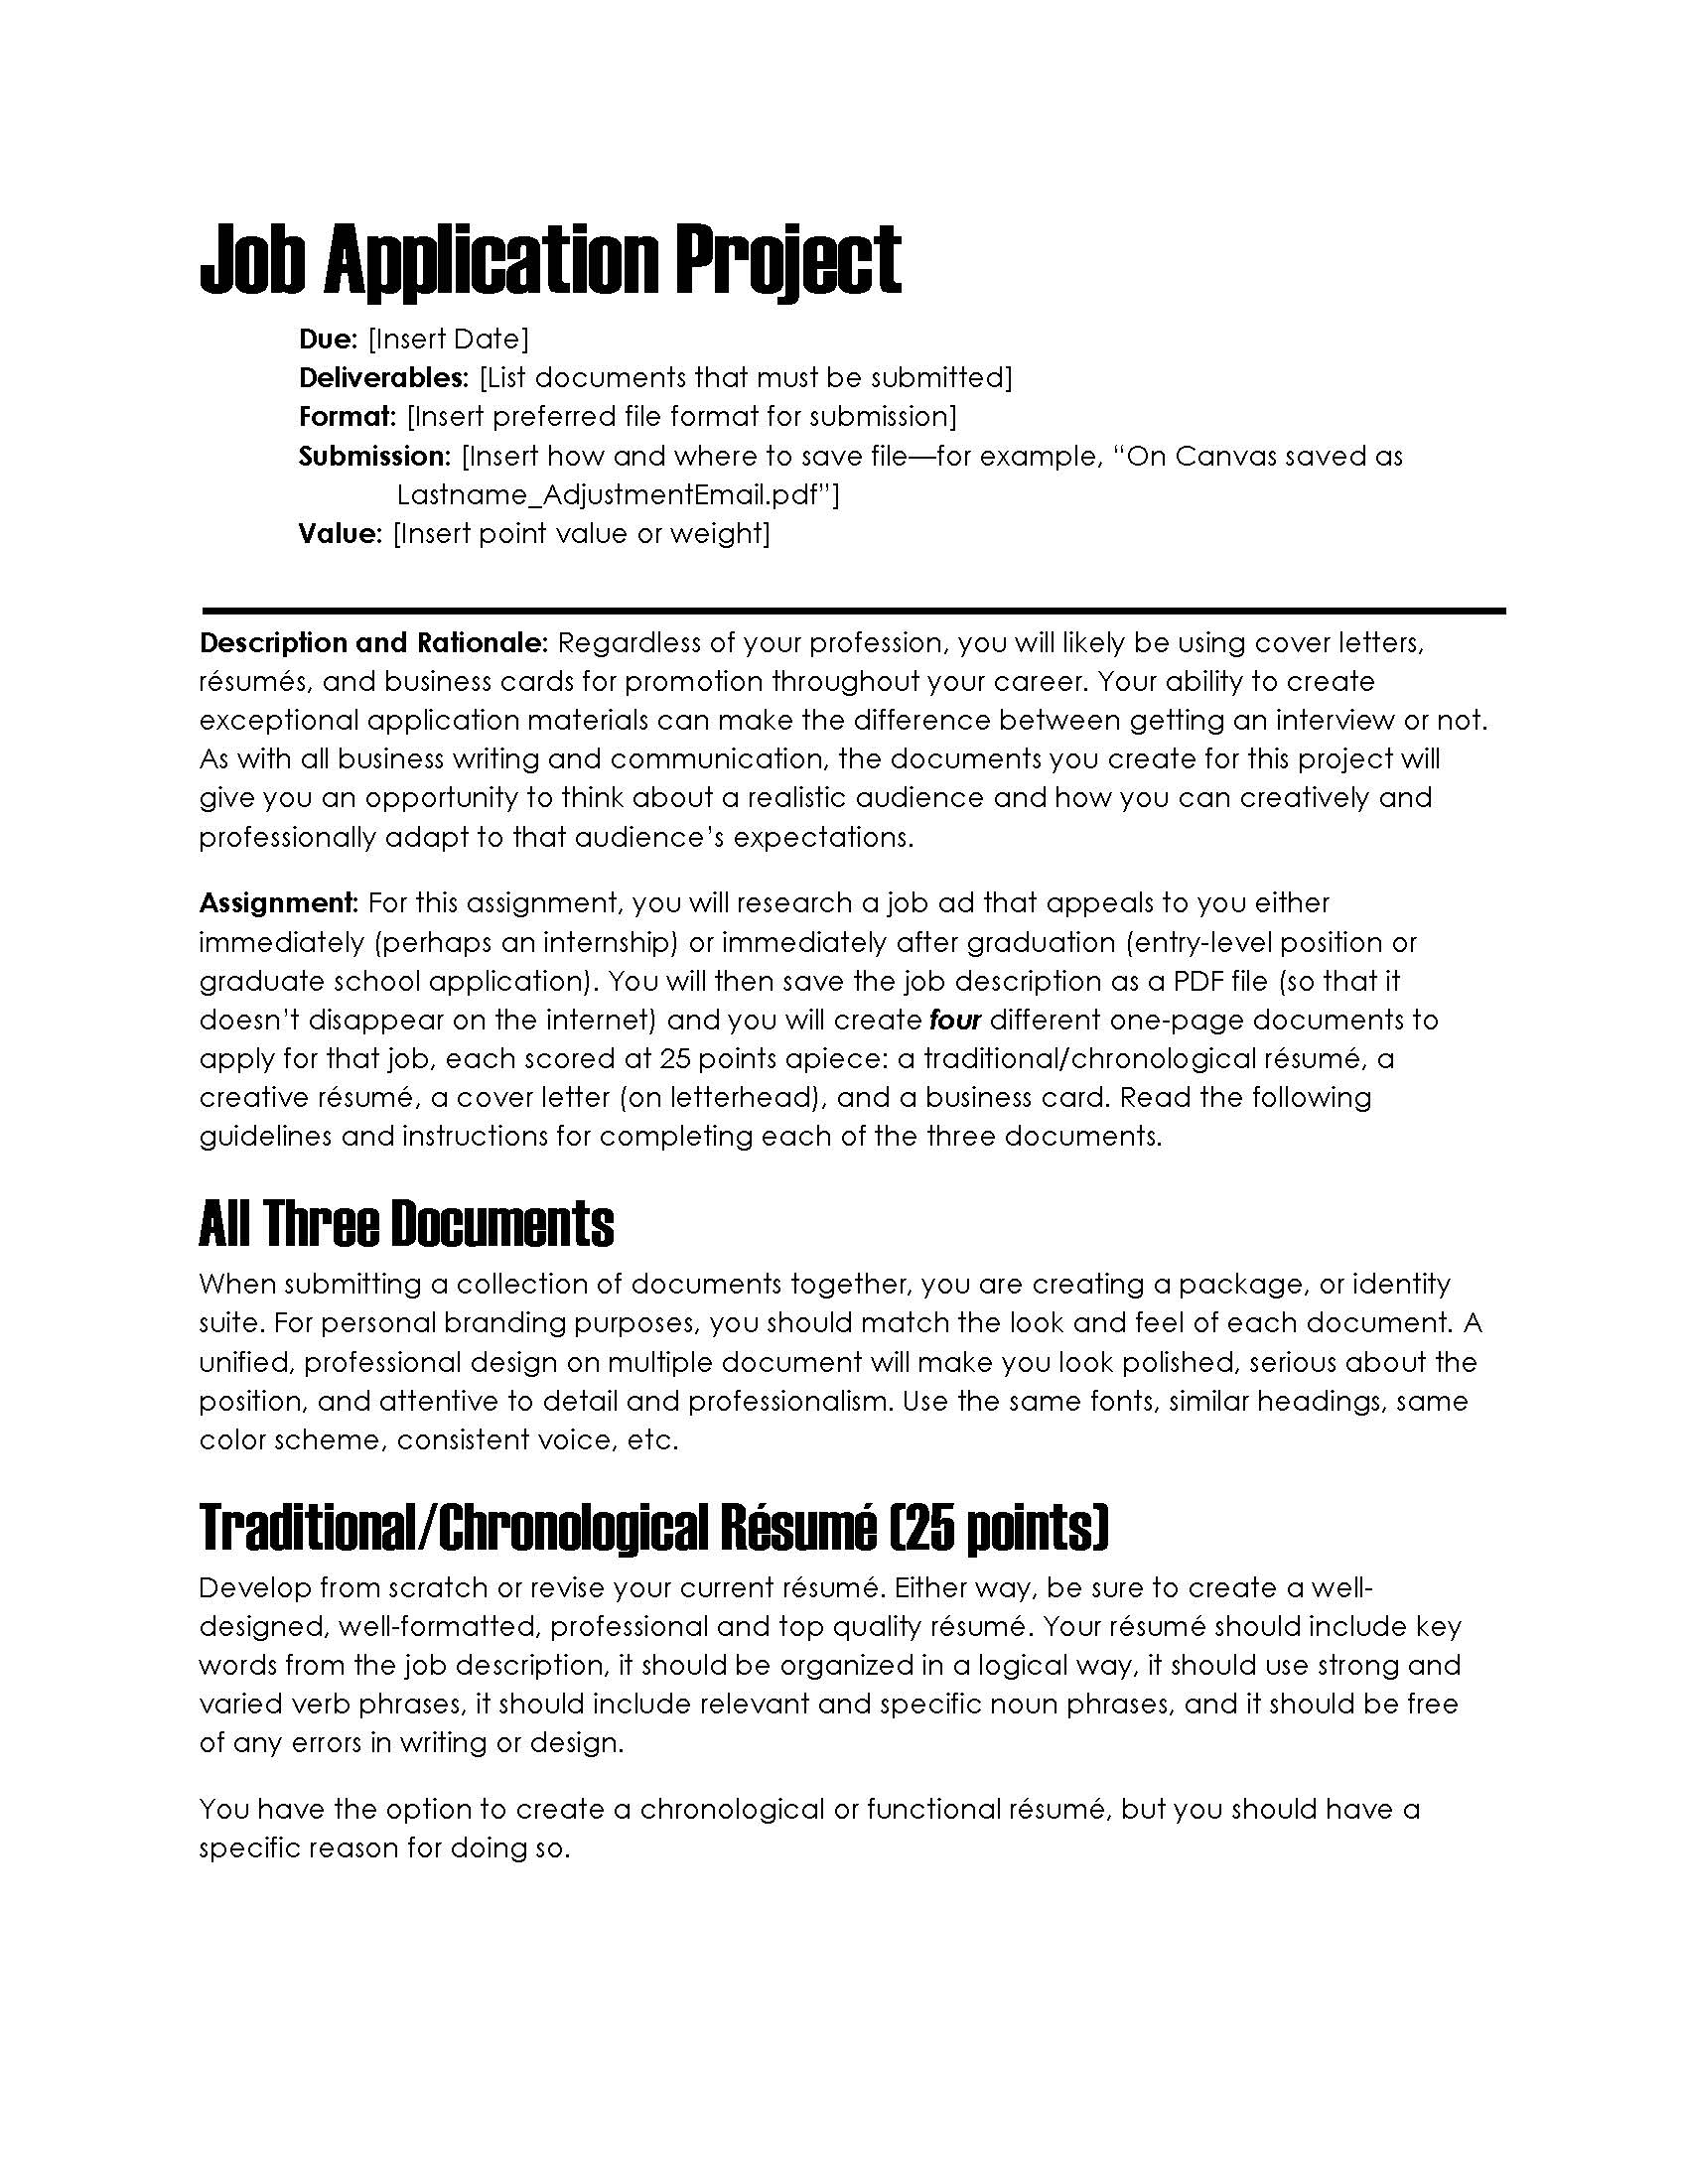 essay about how to prepare for a job interview Silly hiring practices: essay questions on job applications  how to prepare for an interview  essay questions on job applications.